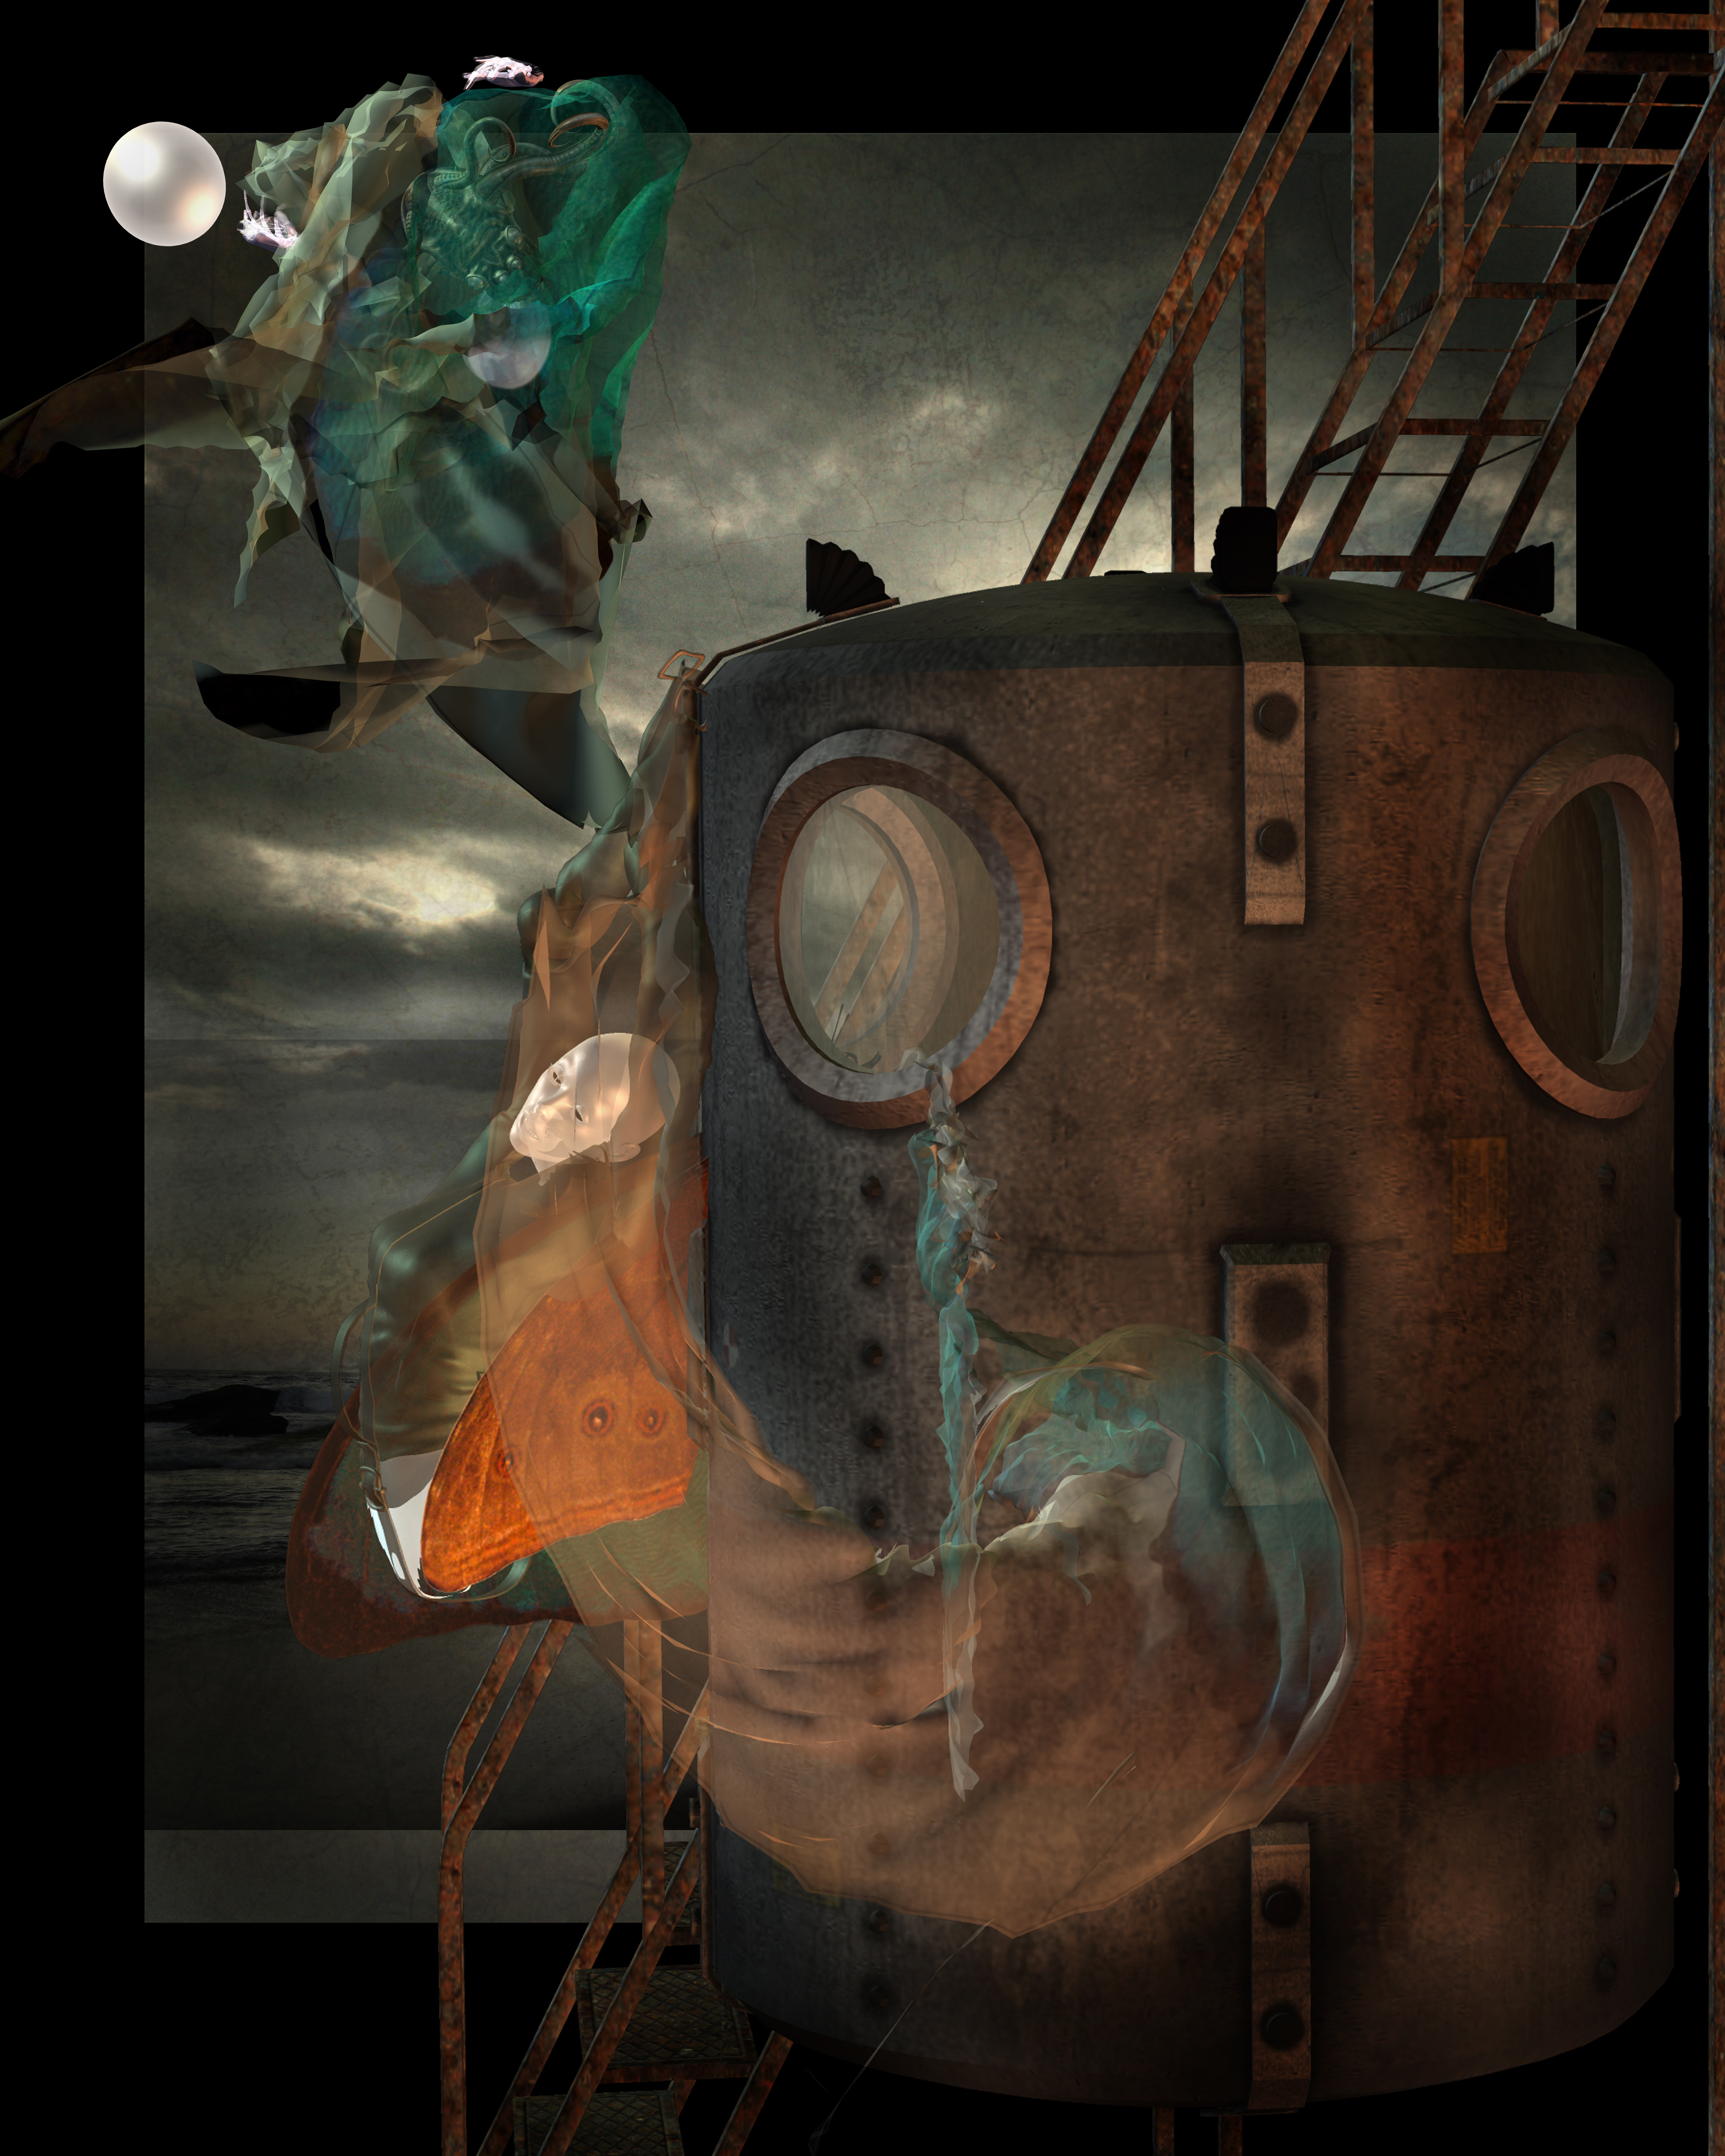 Surreal image of cocoon-like woman attached to side of steampunk pressure chamber, rusty colors. Stormy sky and beach in background. Peacock green scarf with half hidden objects inside floats in air, together with large pearl.